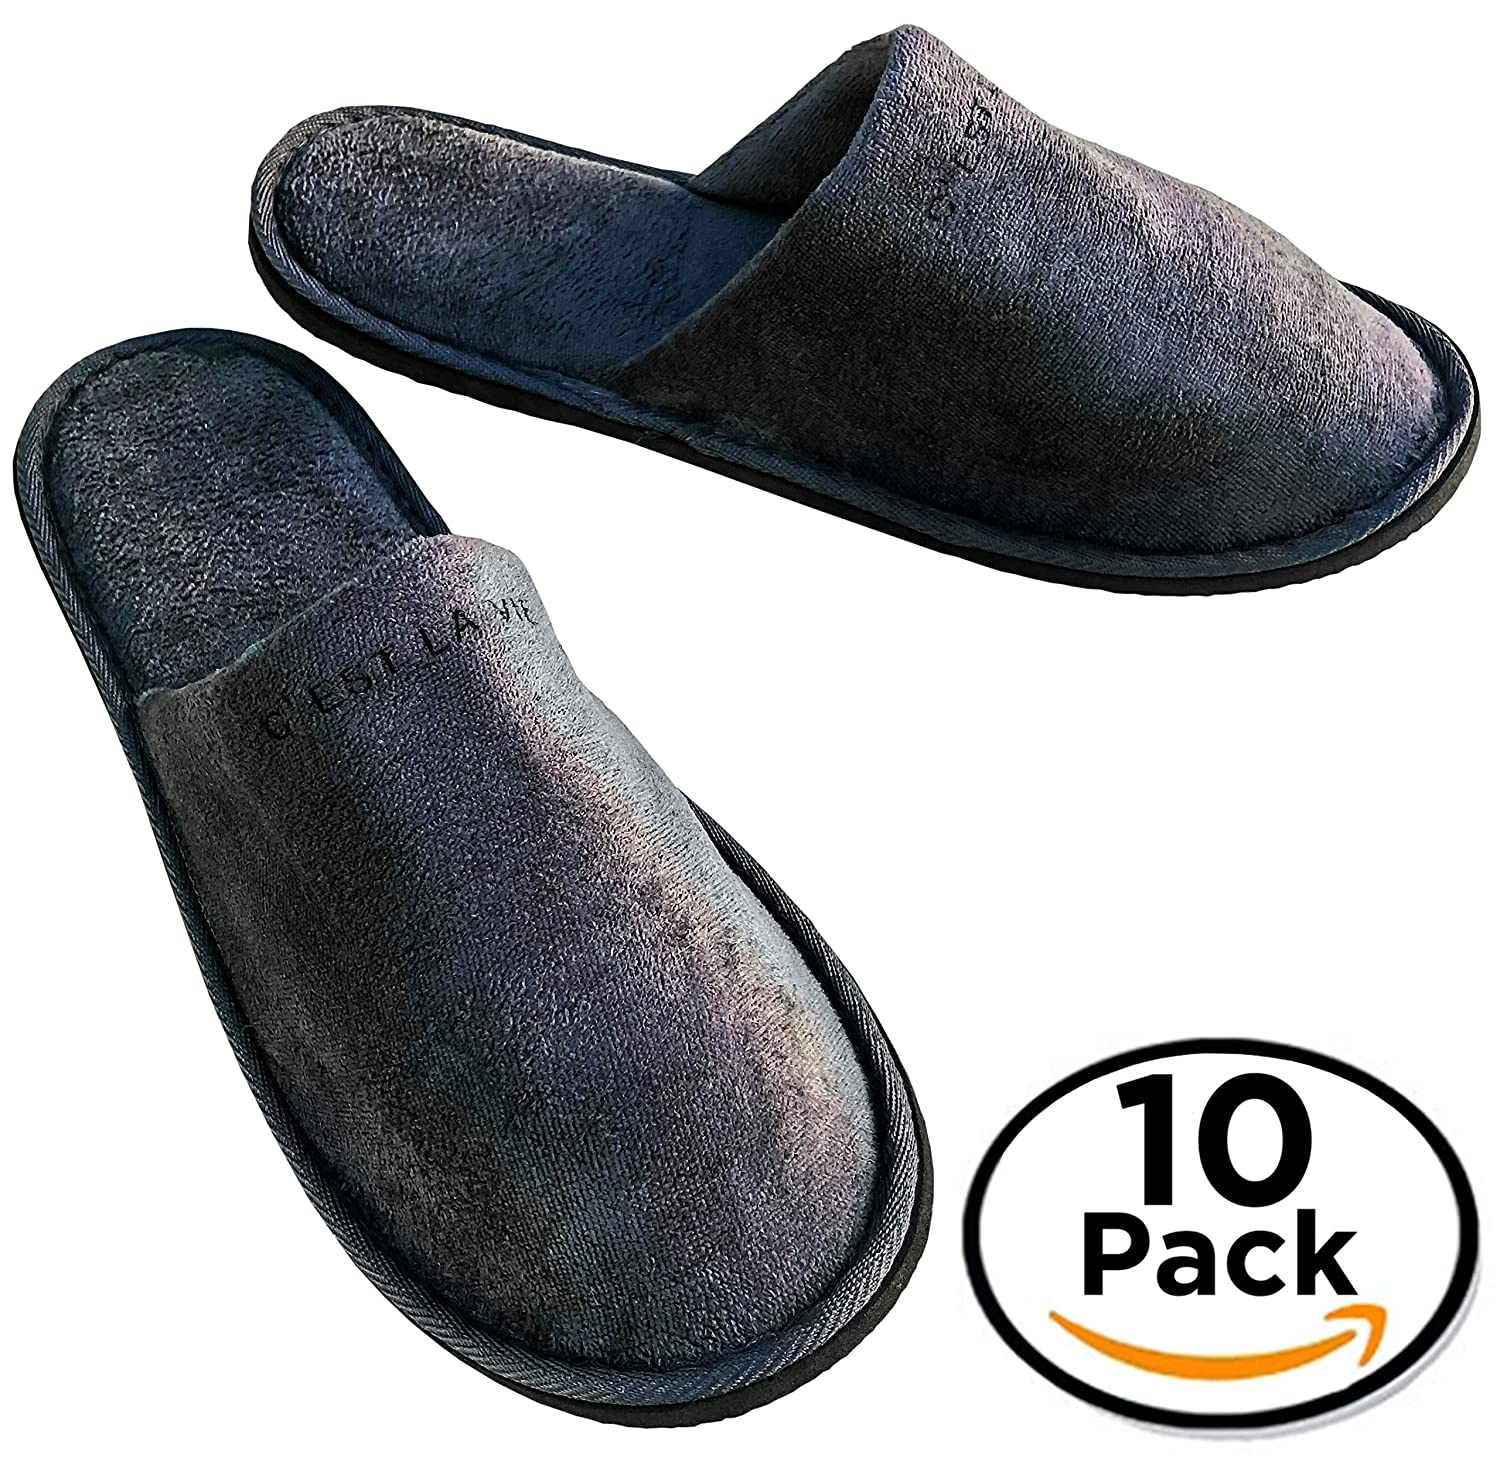 10 BULK Pack - Luxury Spa Bath Hotel Slippers by C'est La Vie - 30cm - Padded Heel, Closed Toe + Durable Non Slip Sole For Men & Women Unisex - Travel Hotel & Guest Amenities Toiletries